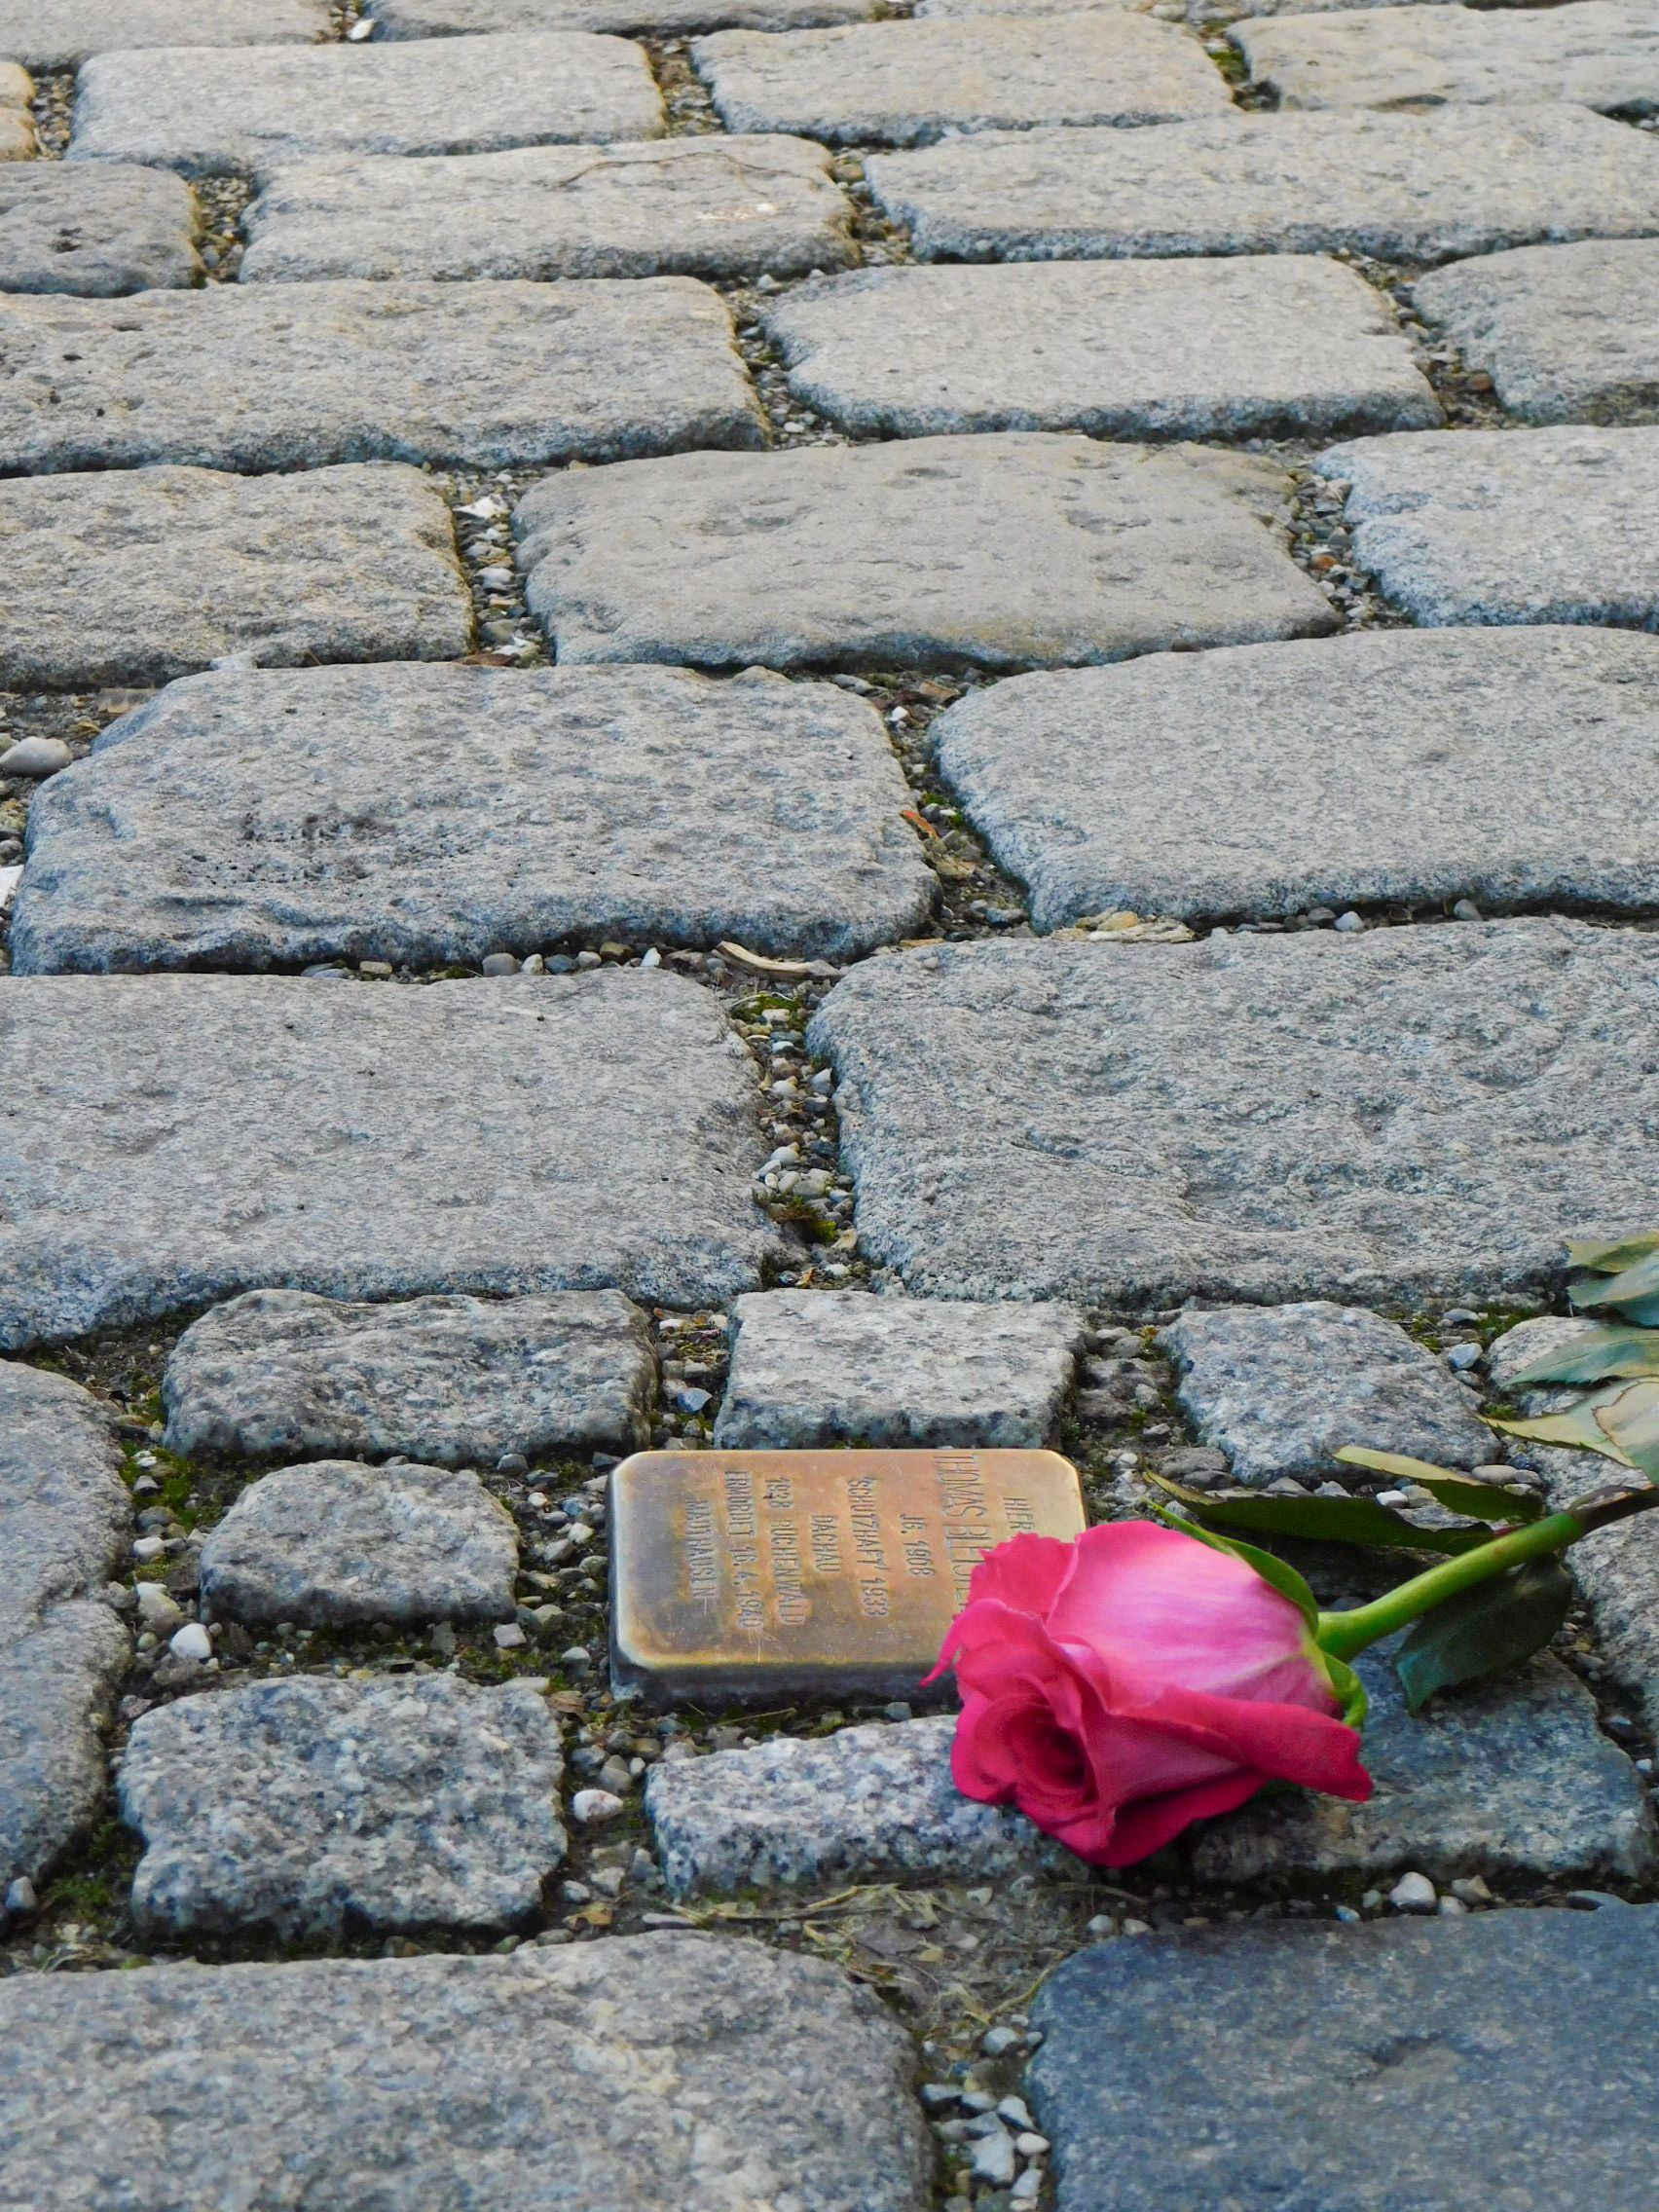 Stumble Stone with rose in Dachau, Photo: City of Dachau